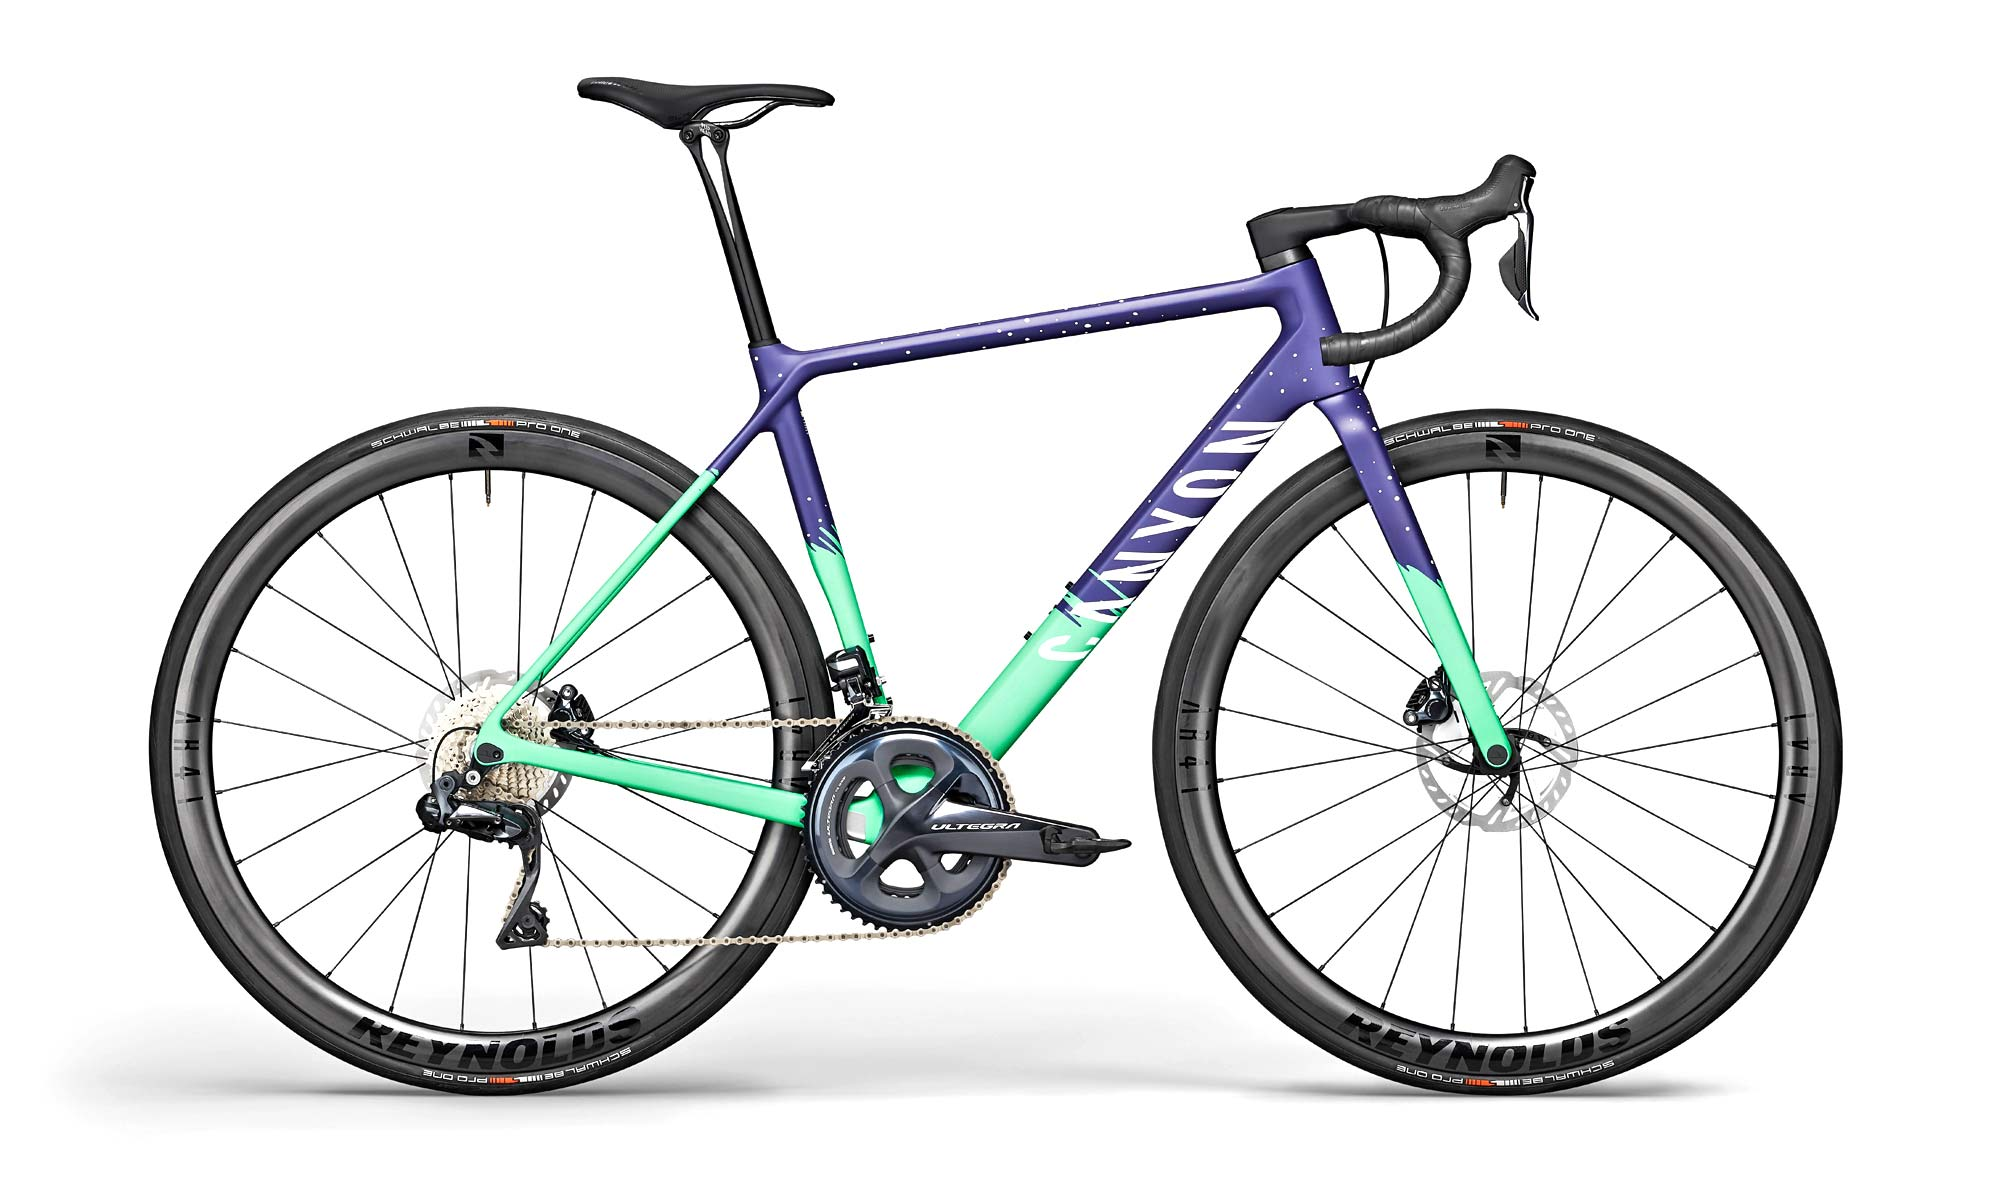 2021 Canyon Ultimate CF SL disc brake road bike, SL 8 WMN Di2